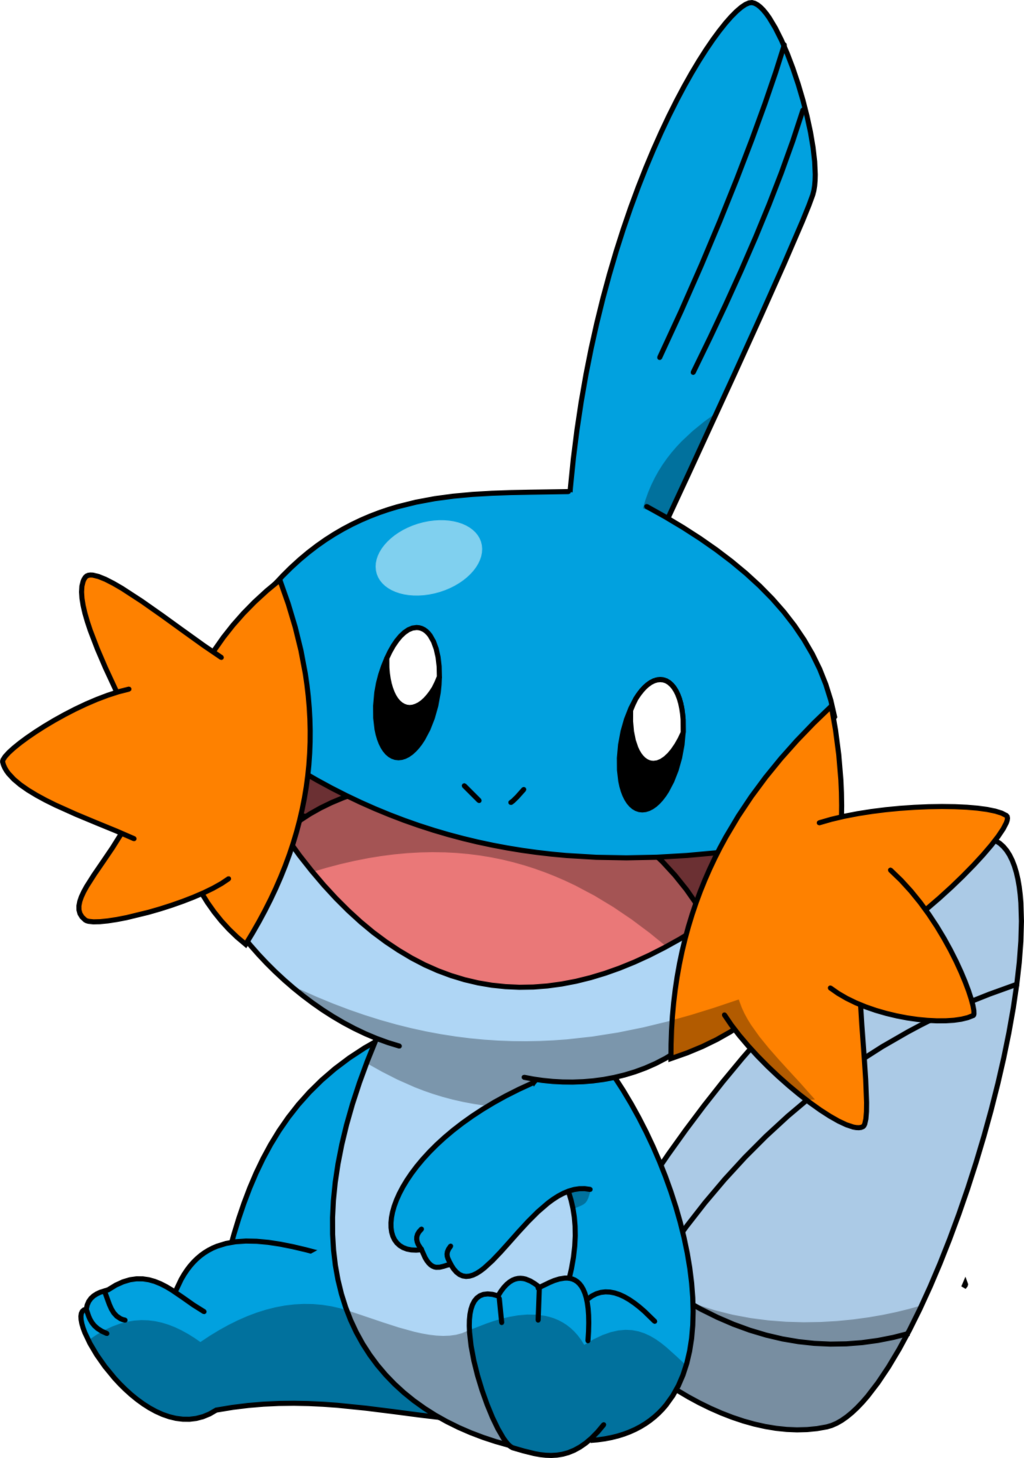 Mudkip drawing. Pokemon anime manga pinterest